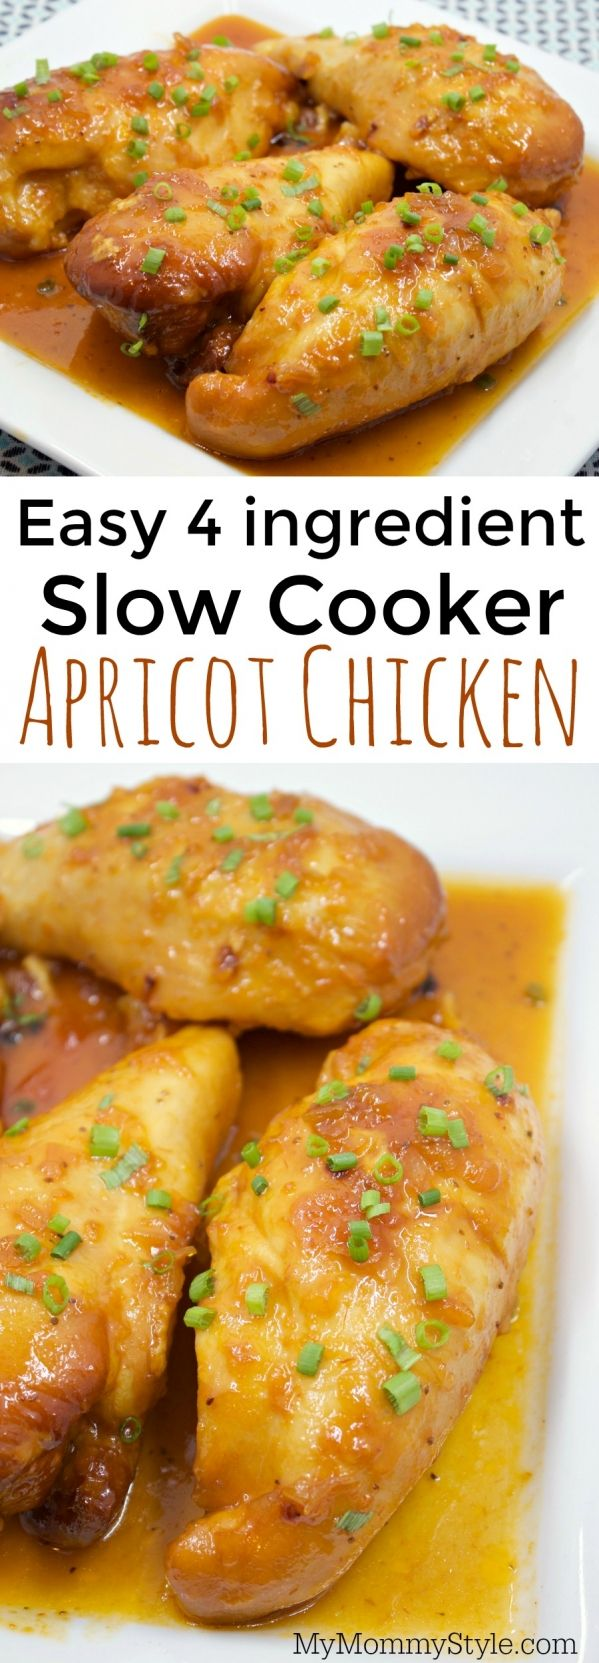 Easy apricot chicken, a great slow cooker recipe that the family will love and it's a 4 ingredient recipe that only takes about 5 minutes prep time!